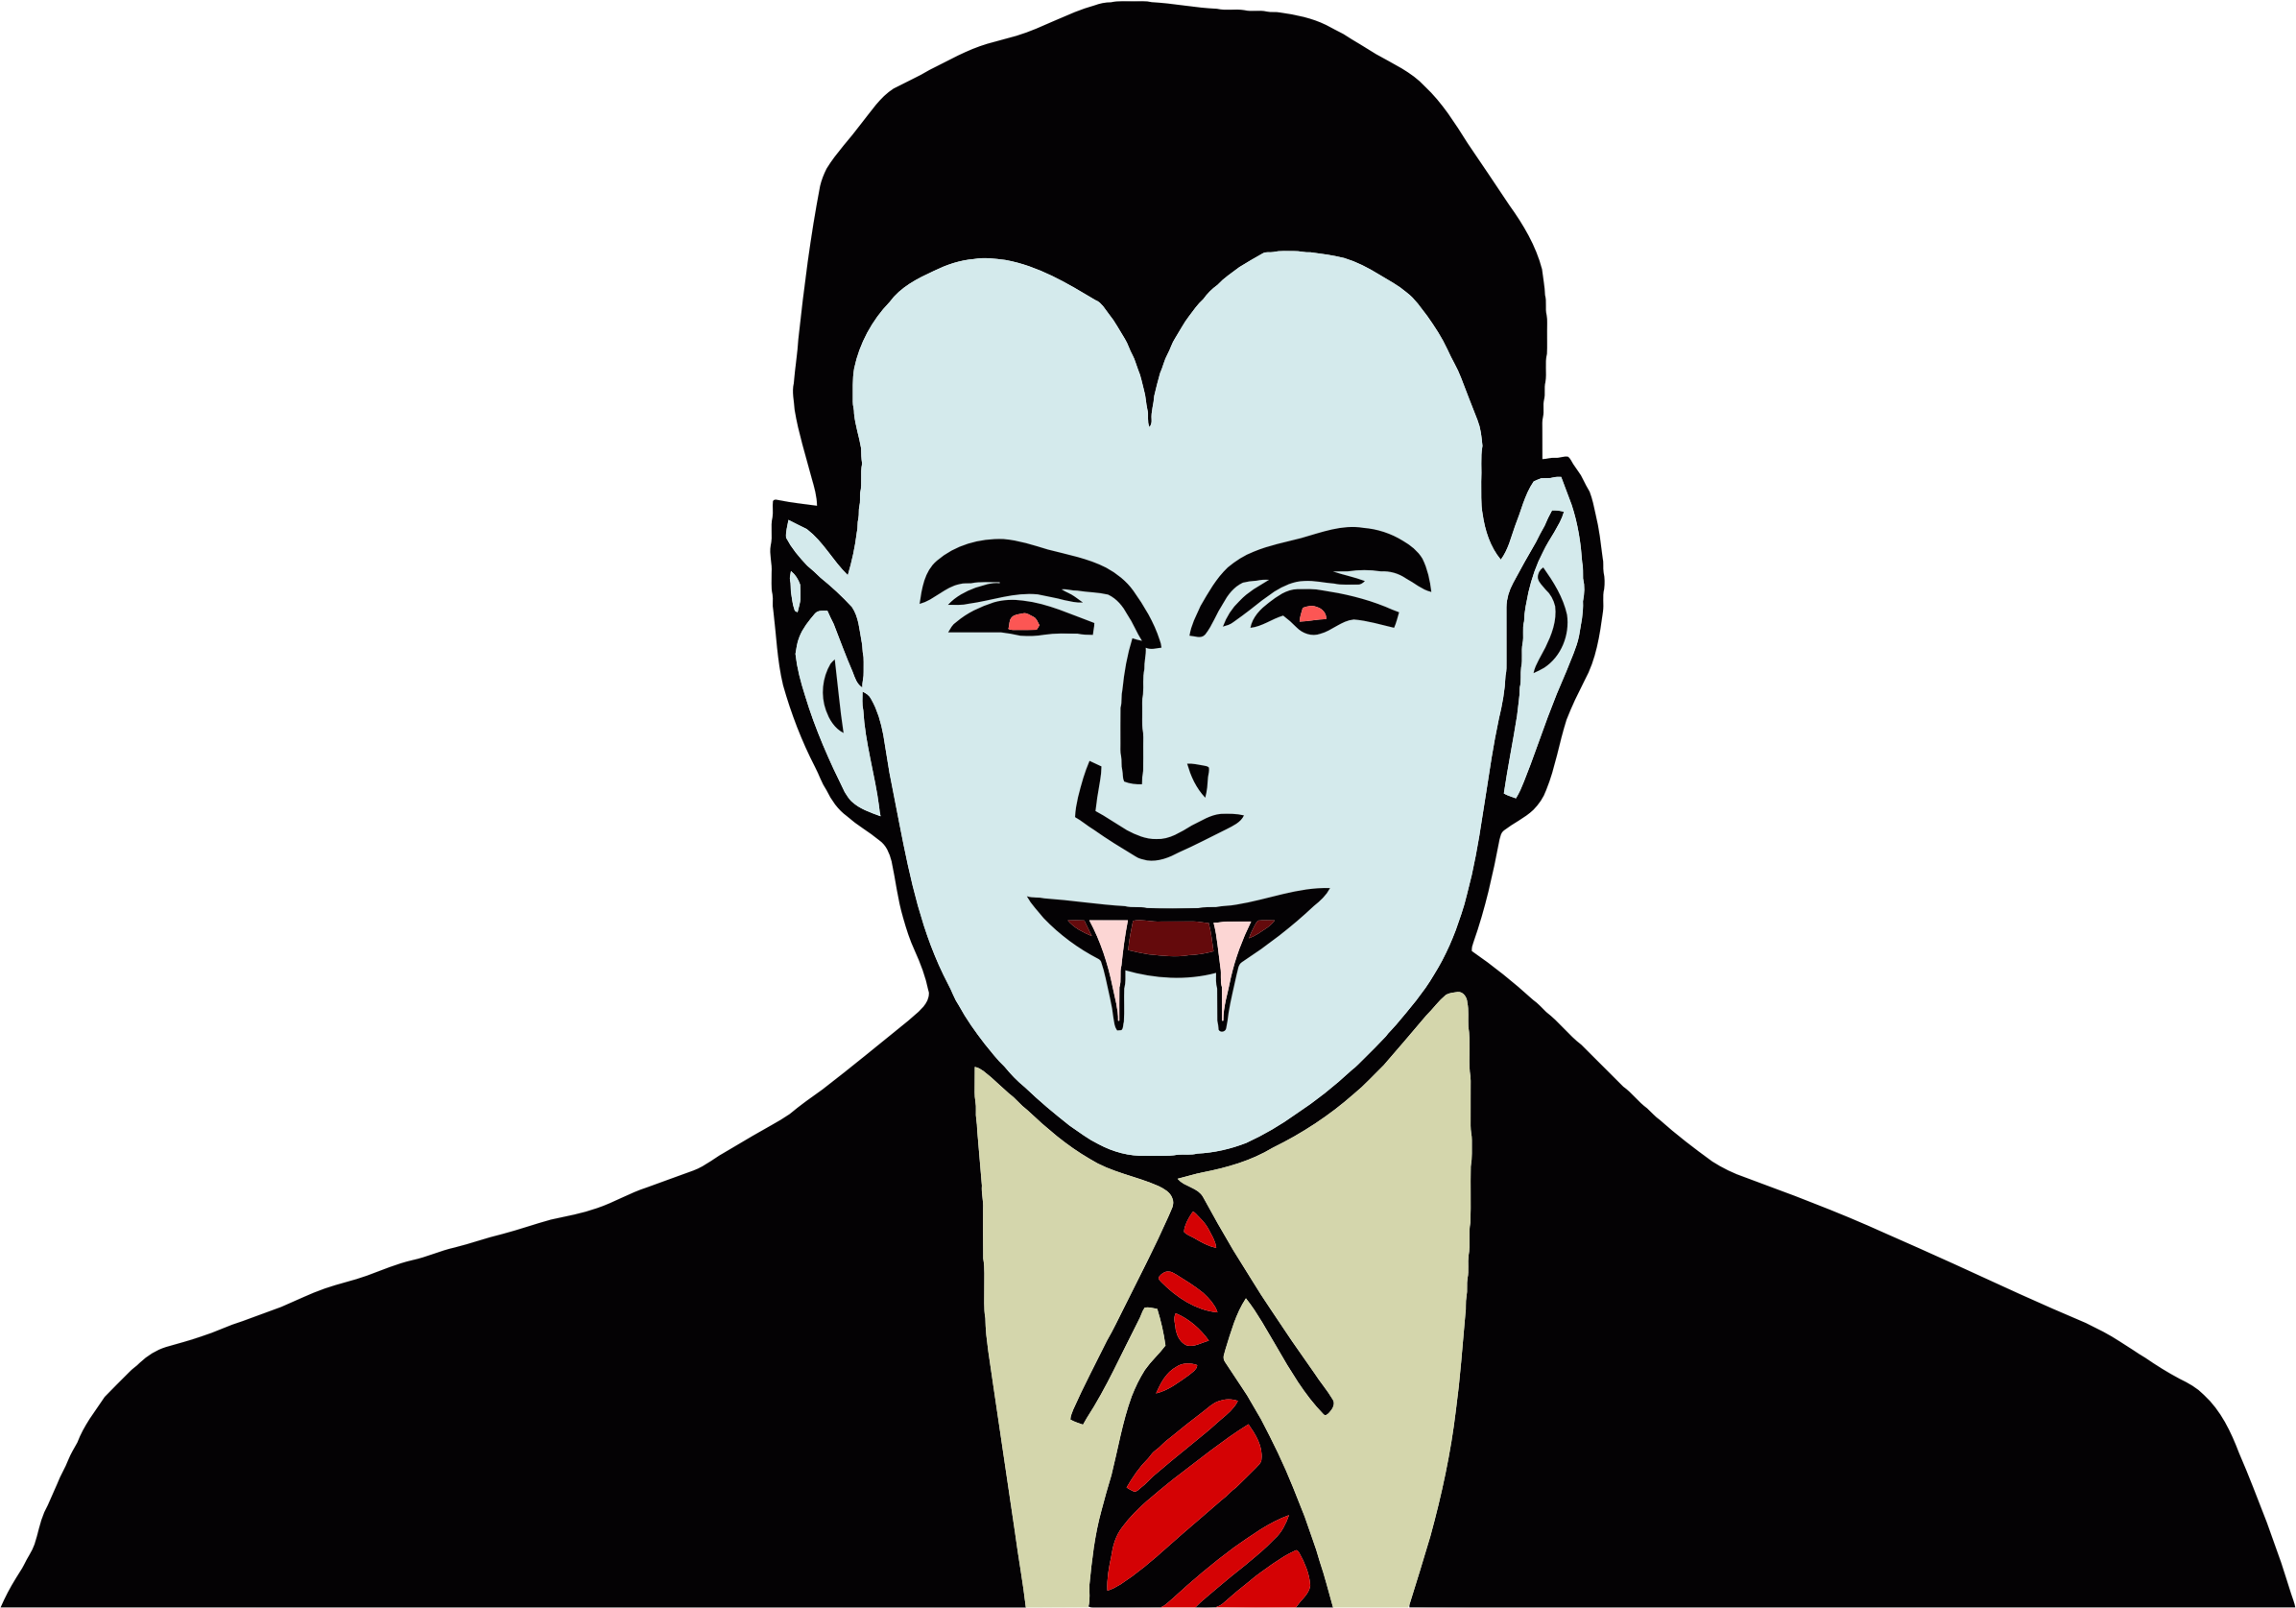 Cartoon Dracula by GDJ